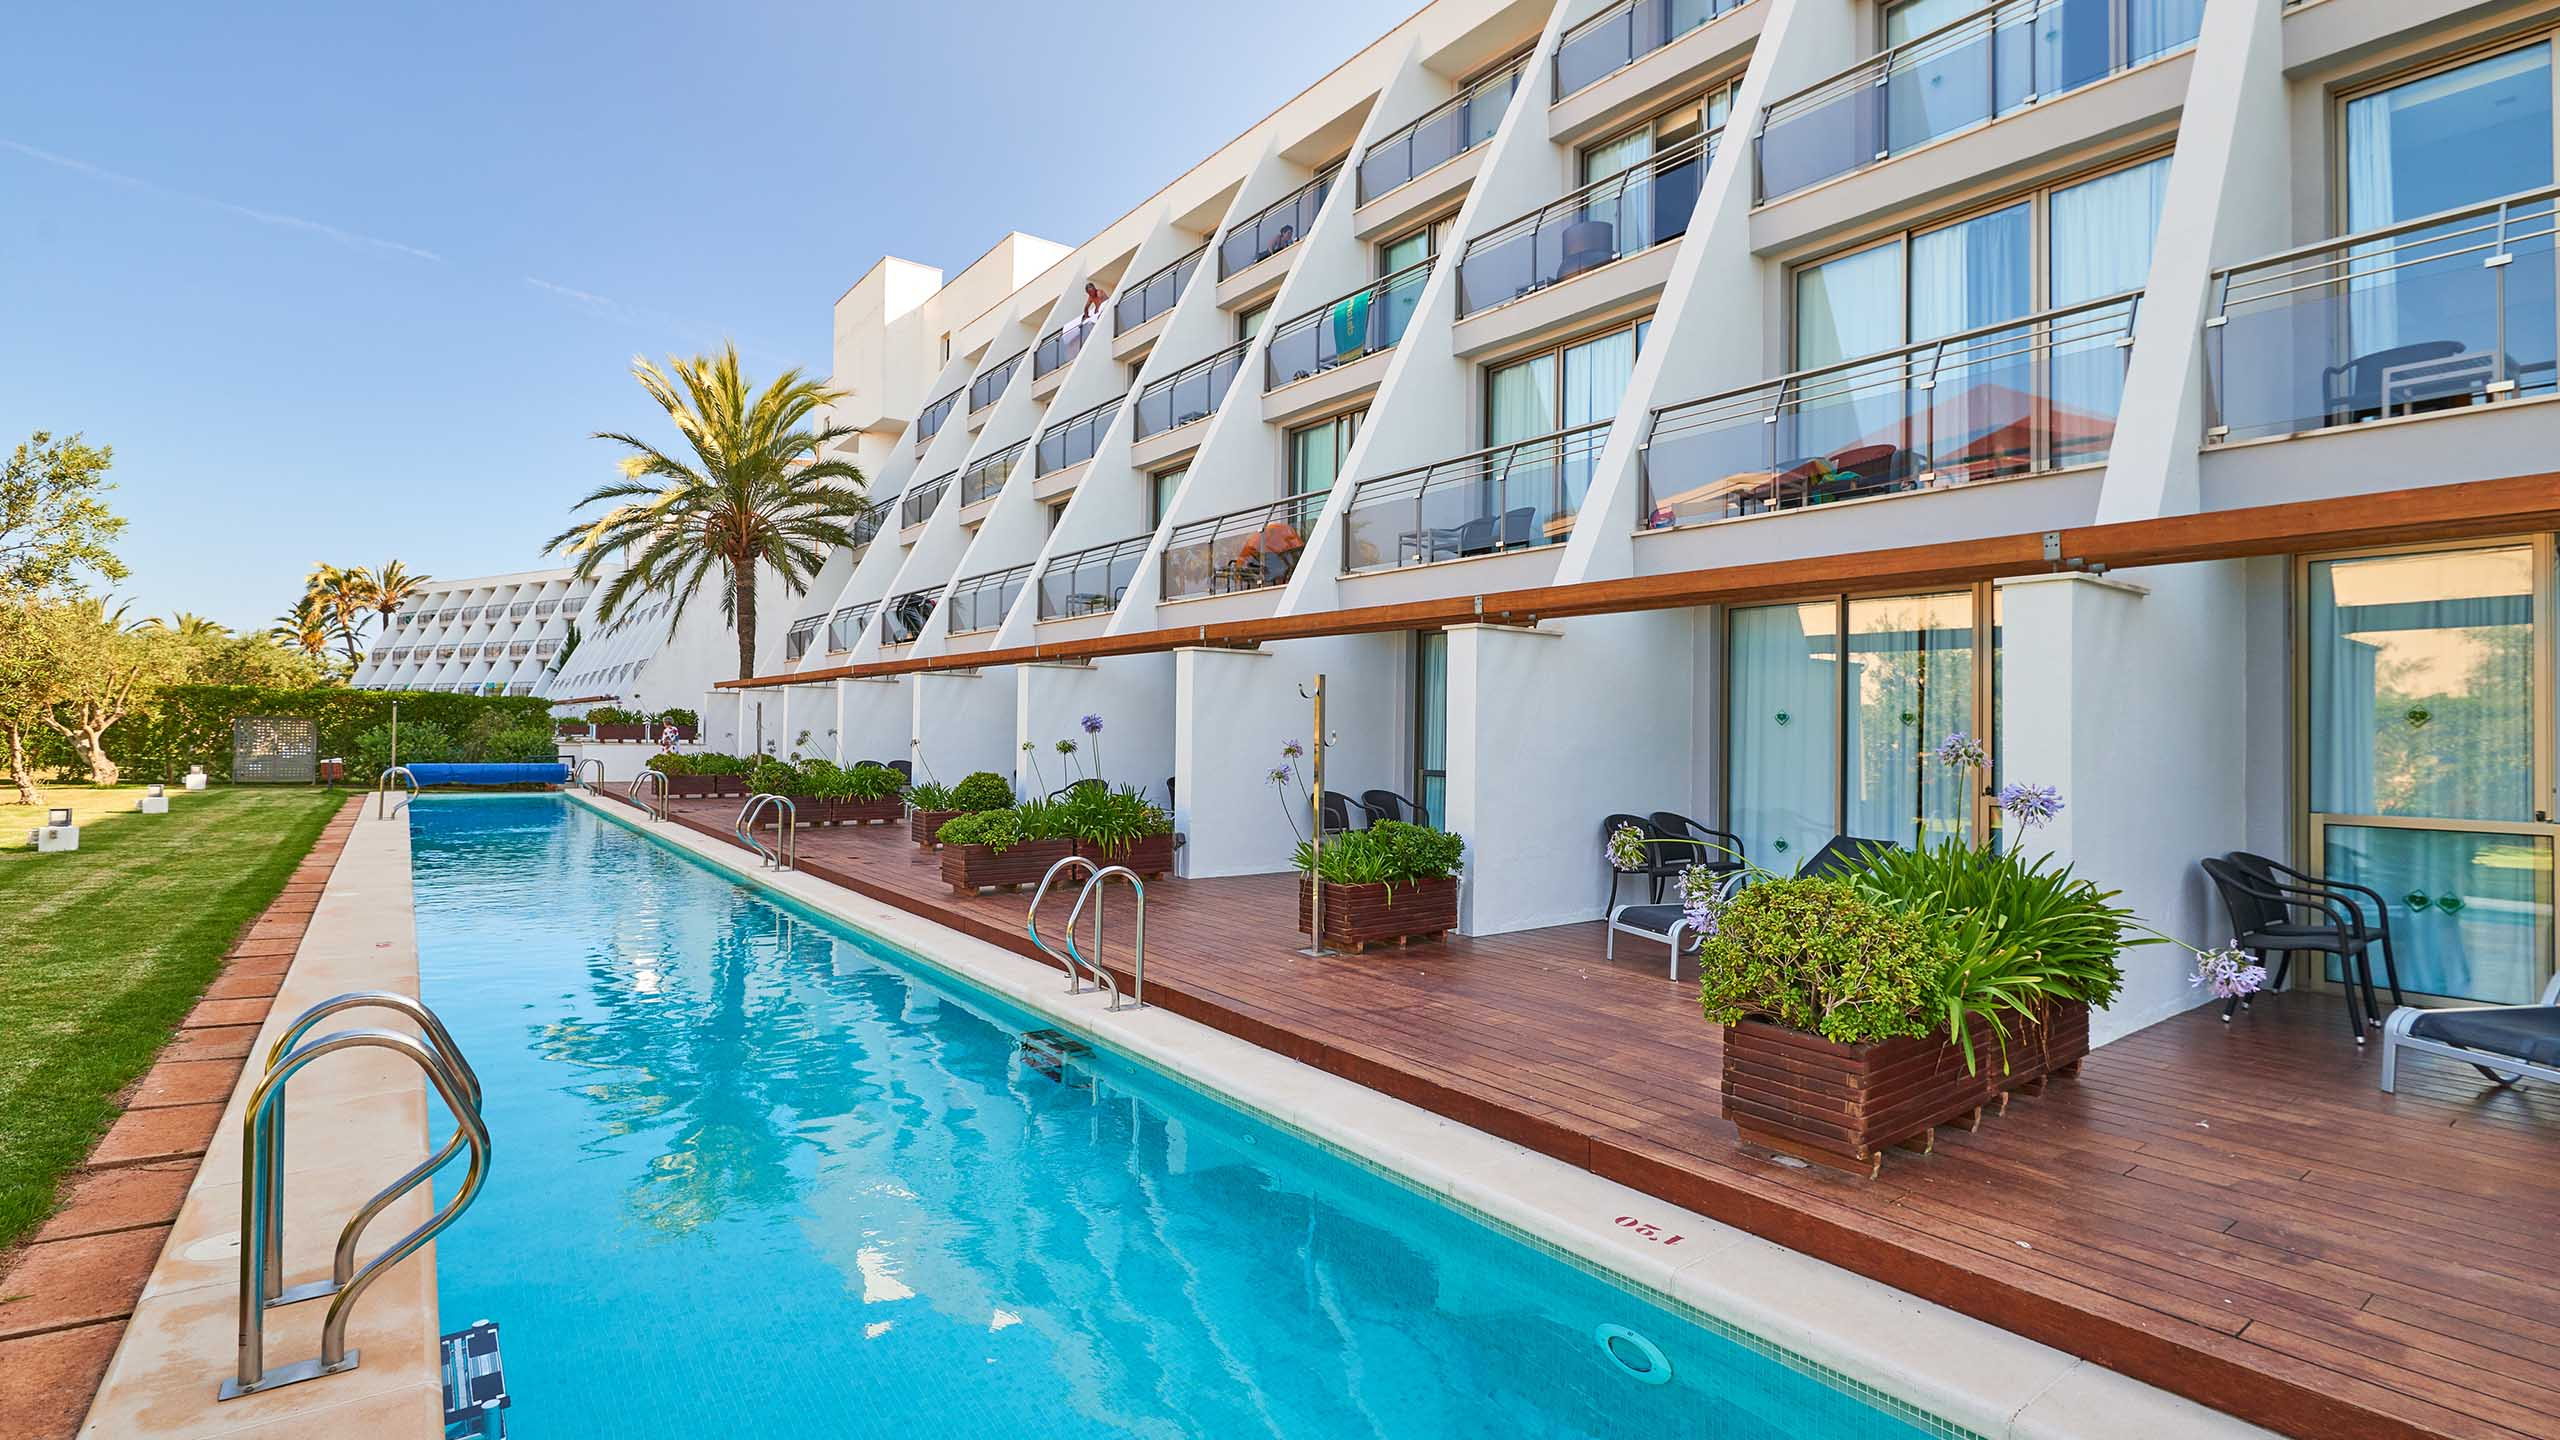 Hotels Aparthotels in Sa Coma Majorca Protur Hotels